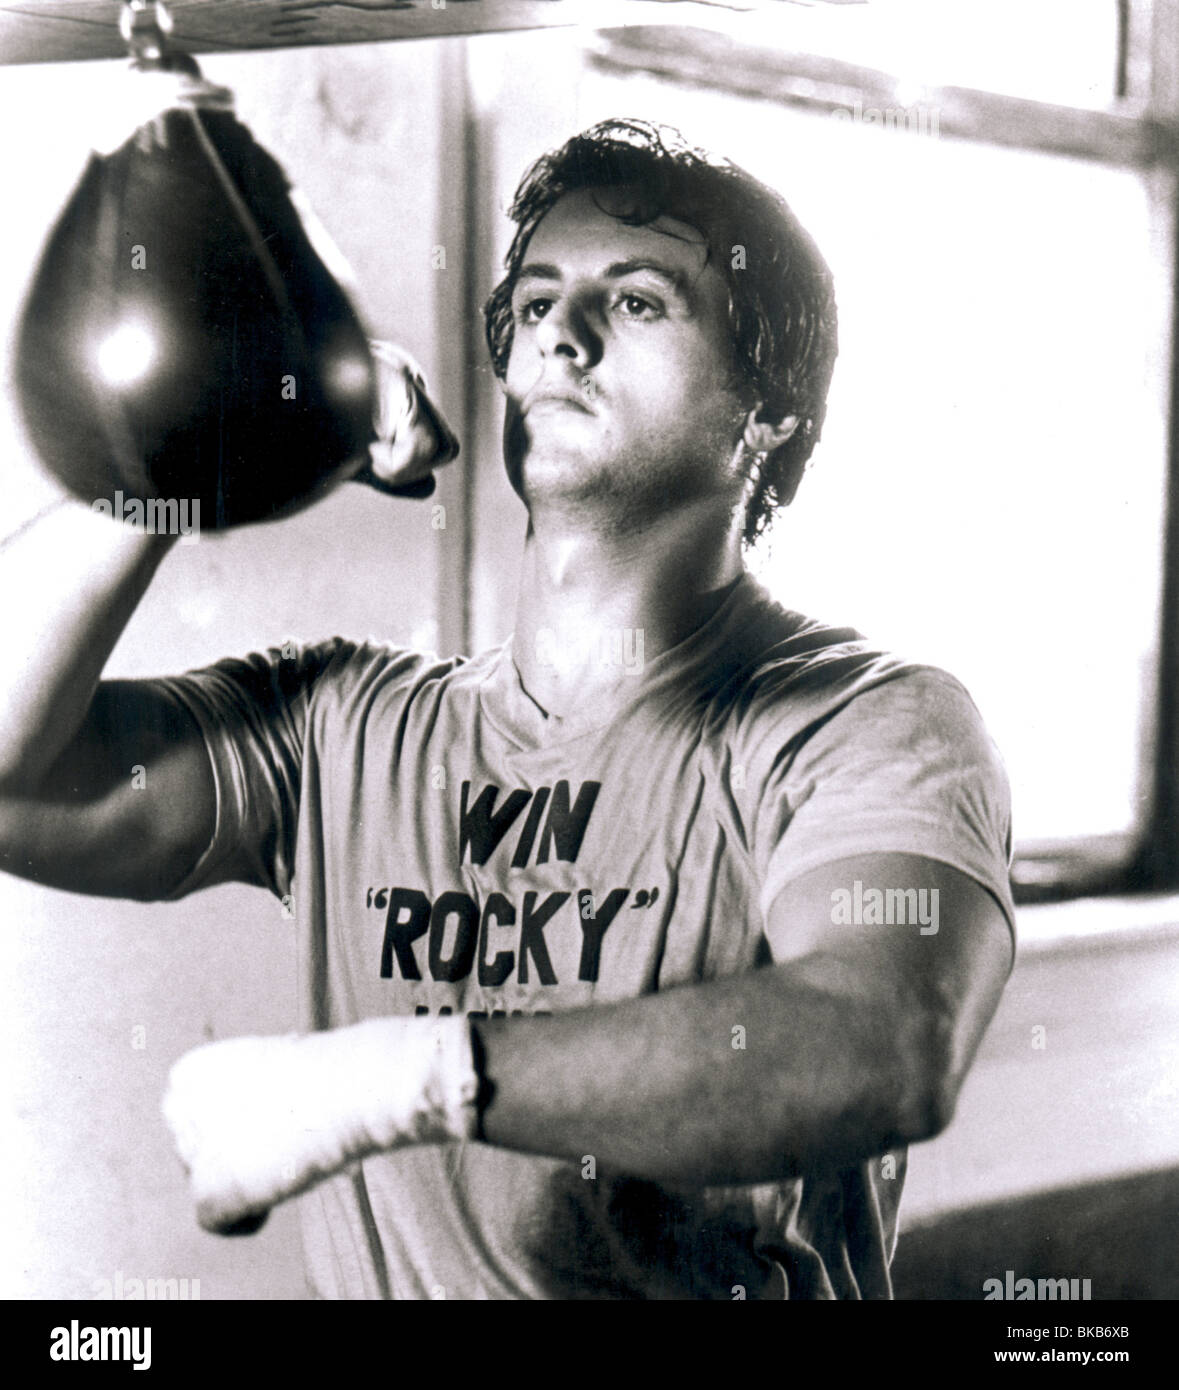 ROCKY -1976 SYLVESTER STALLONE - Stock Image